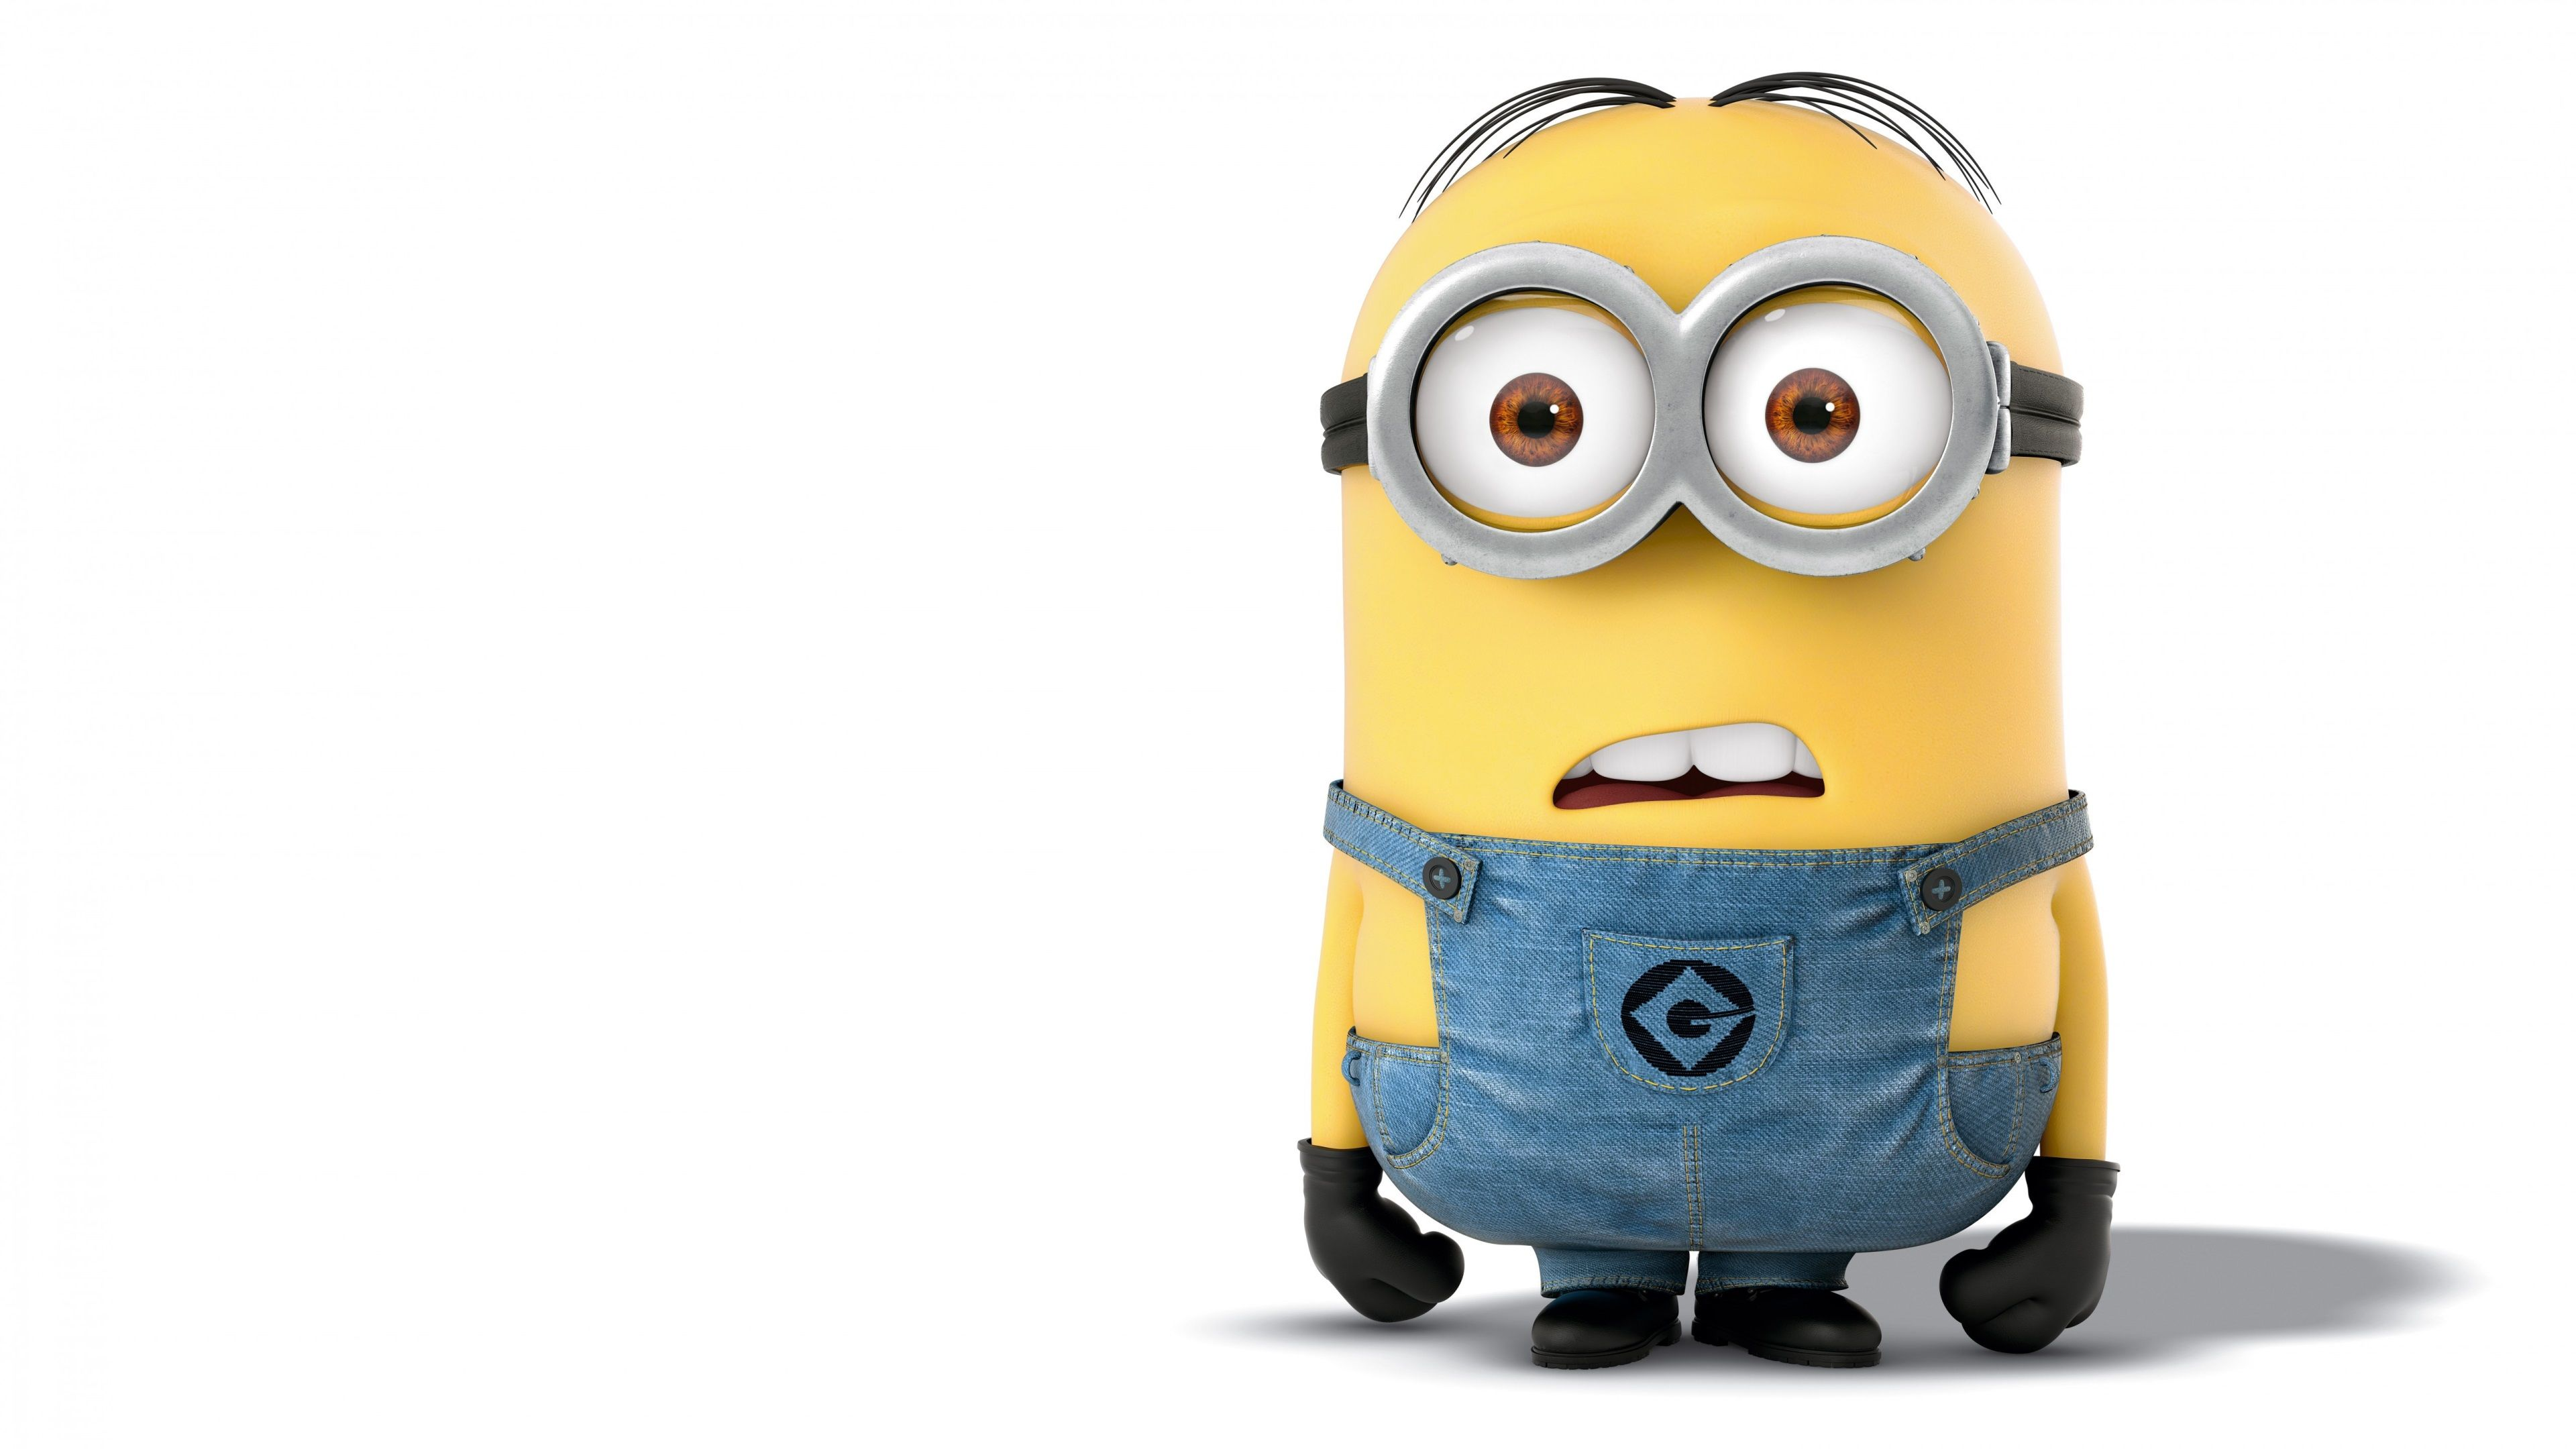 3840x2160 minions 4k widescreen wallpaper Minions